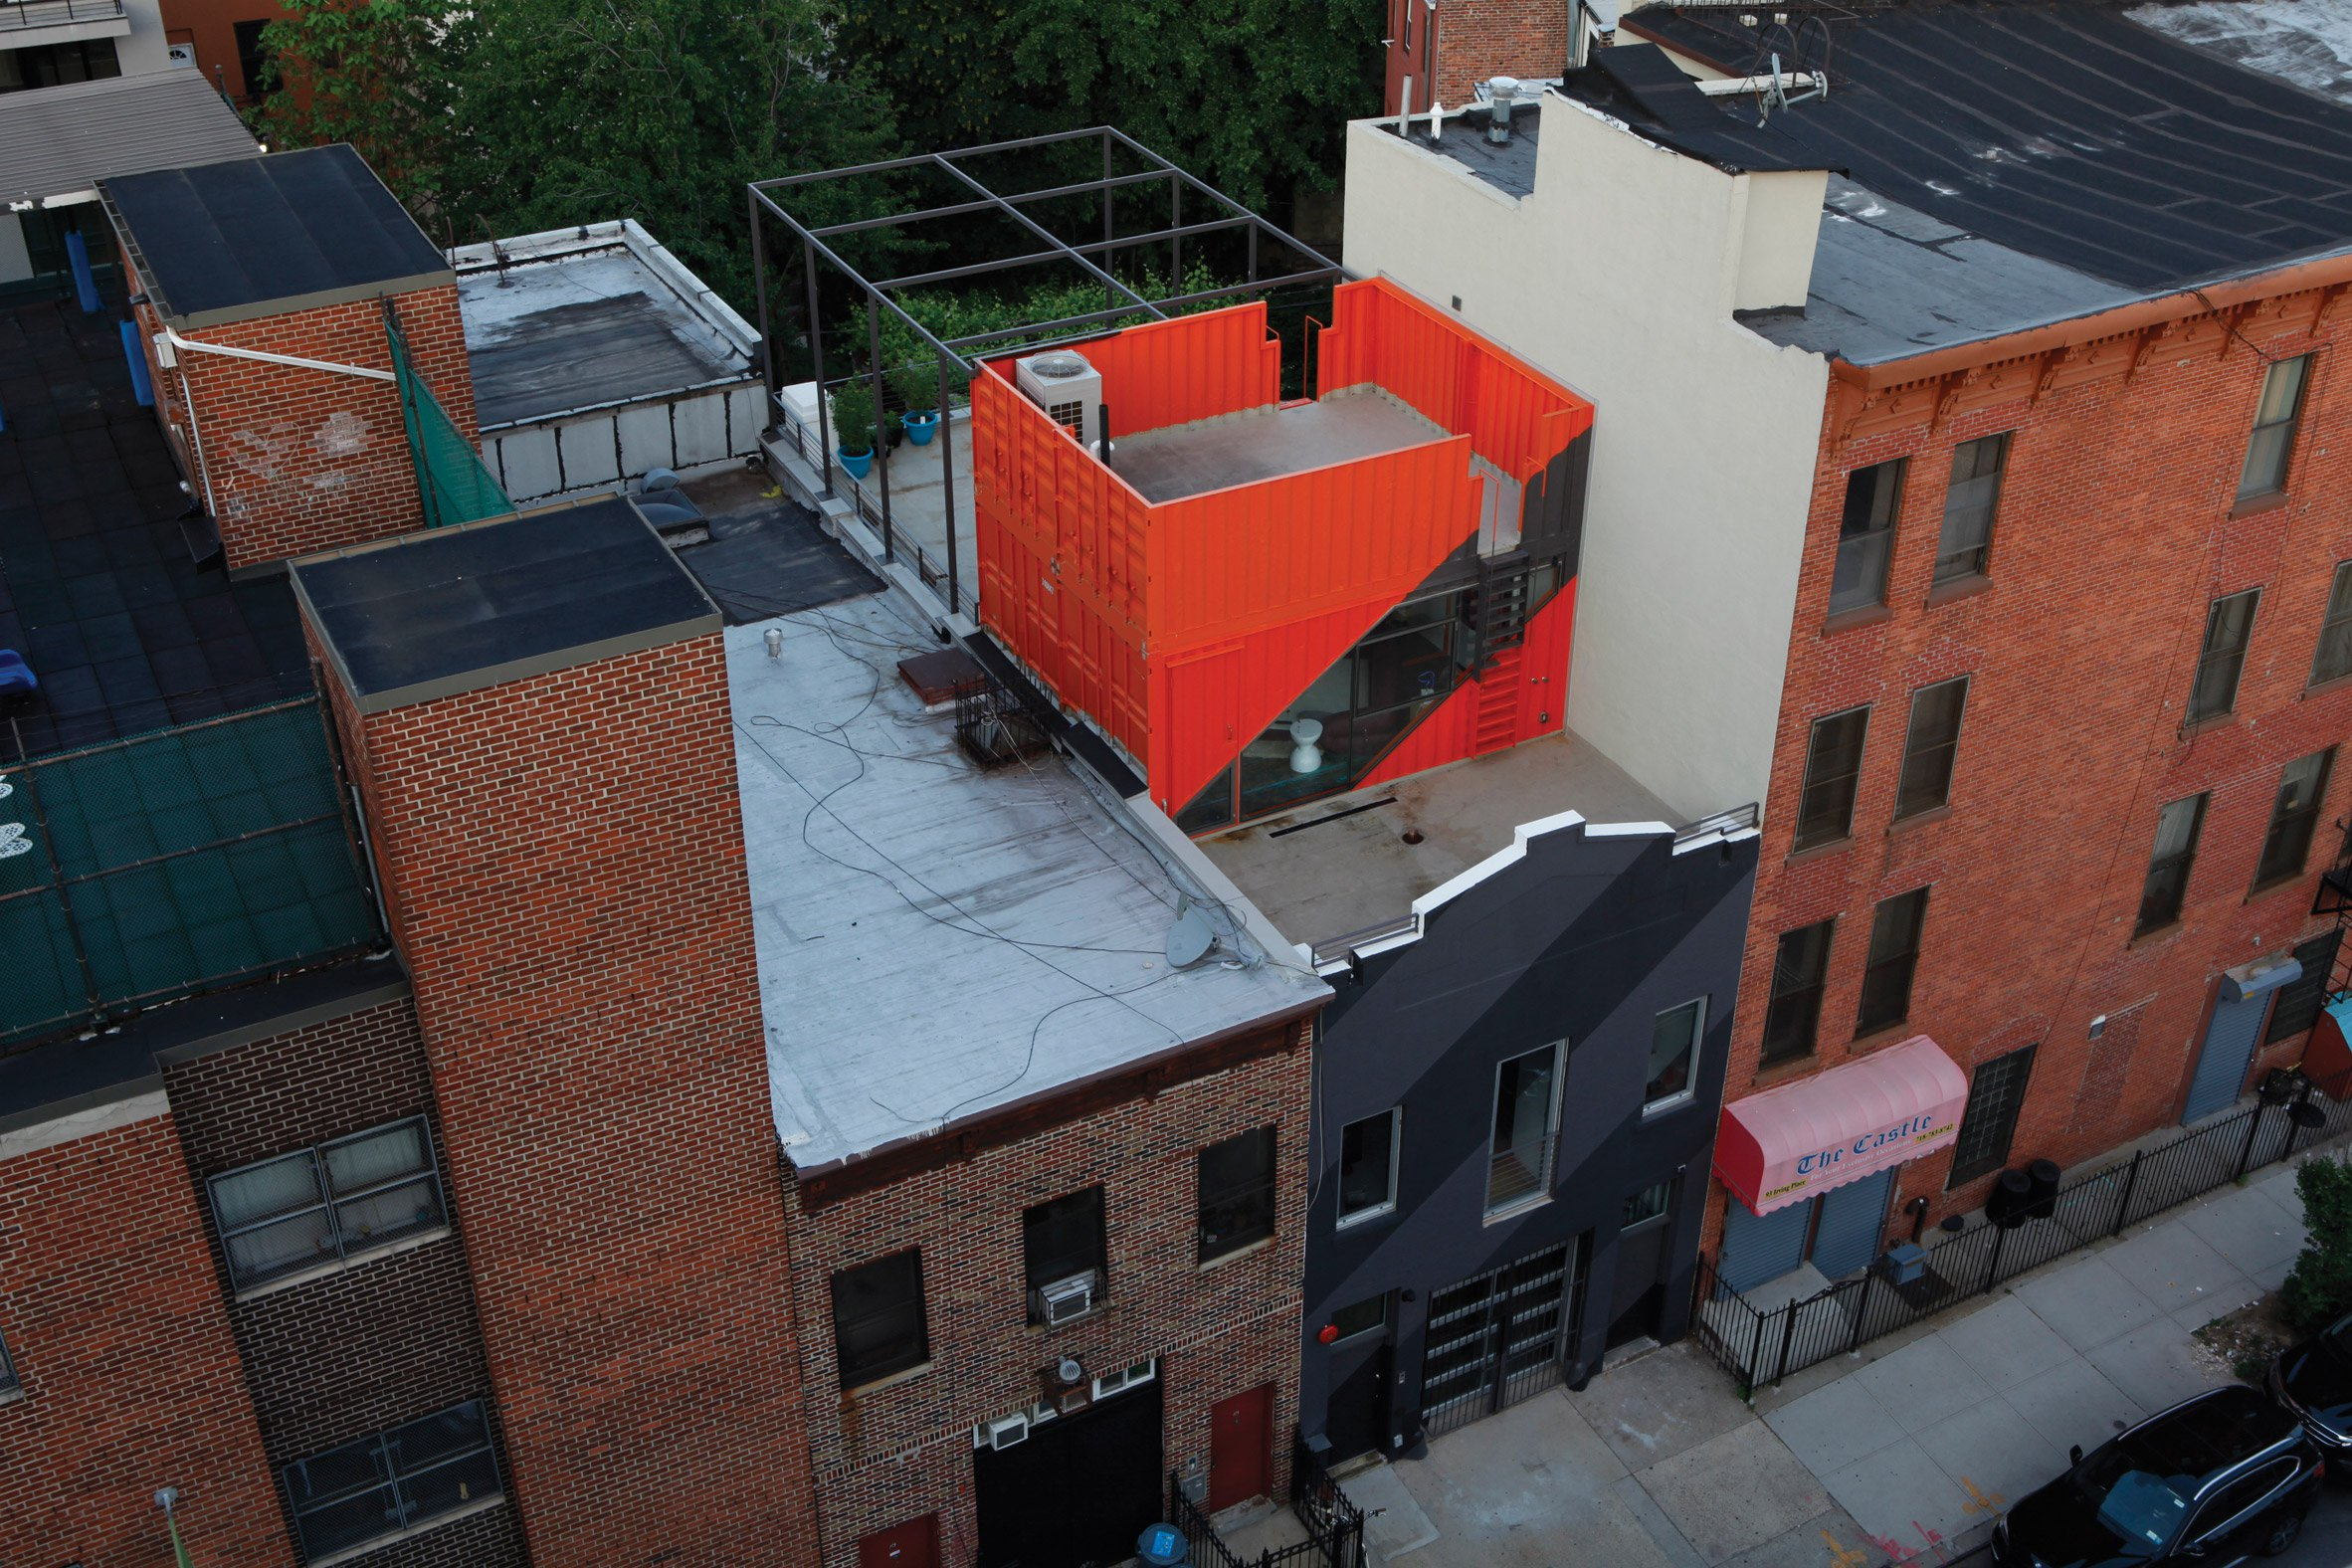 Lot-Ek uses shipping containers to overhaul Brooklyn carriage house